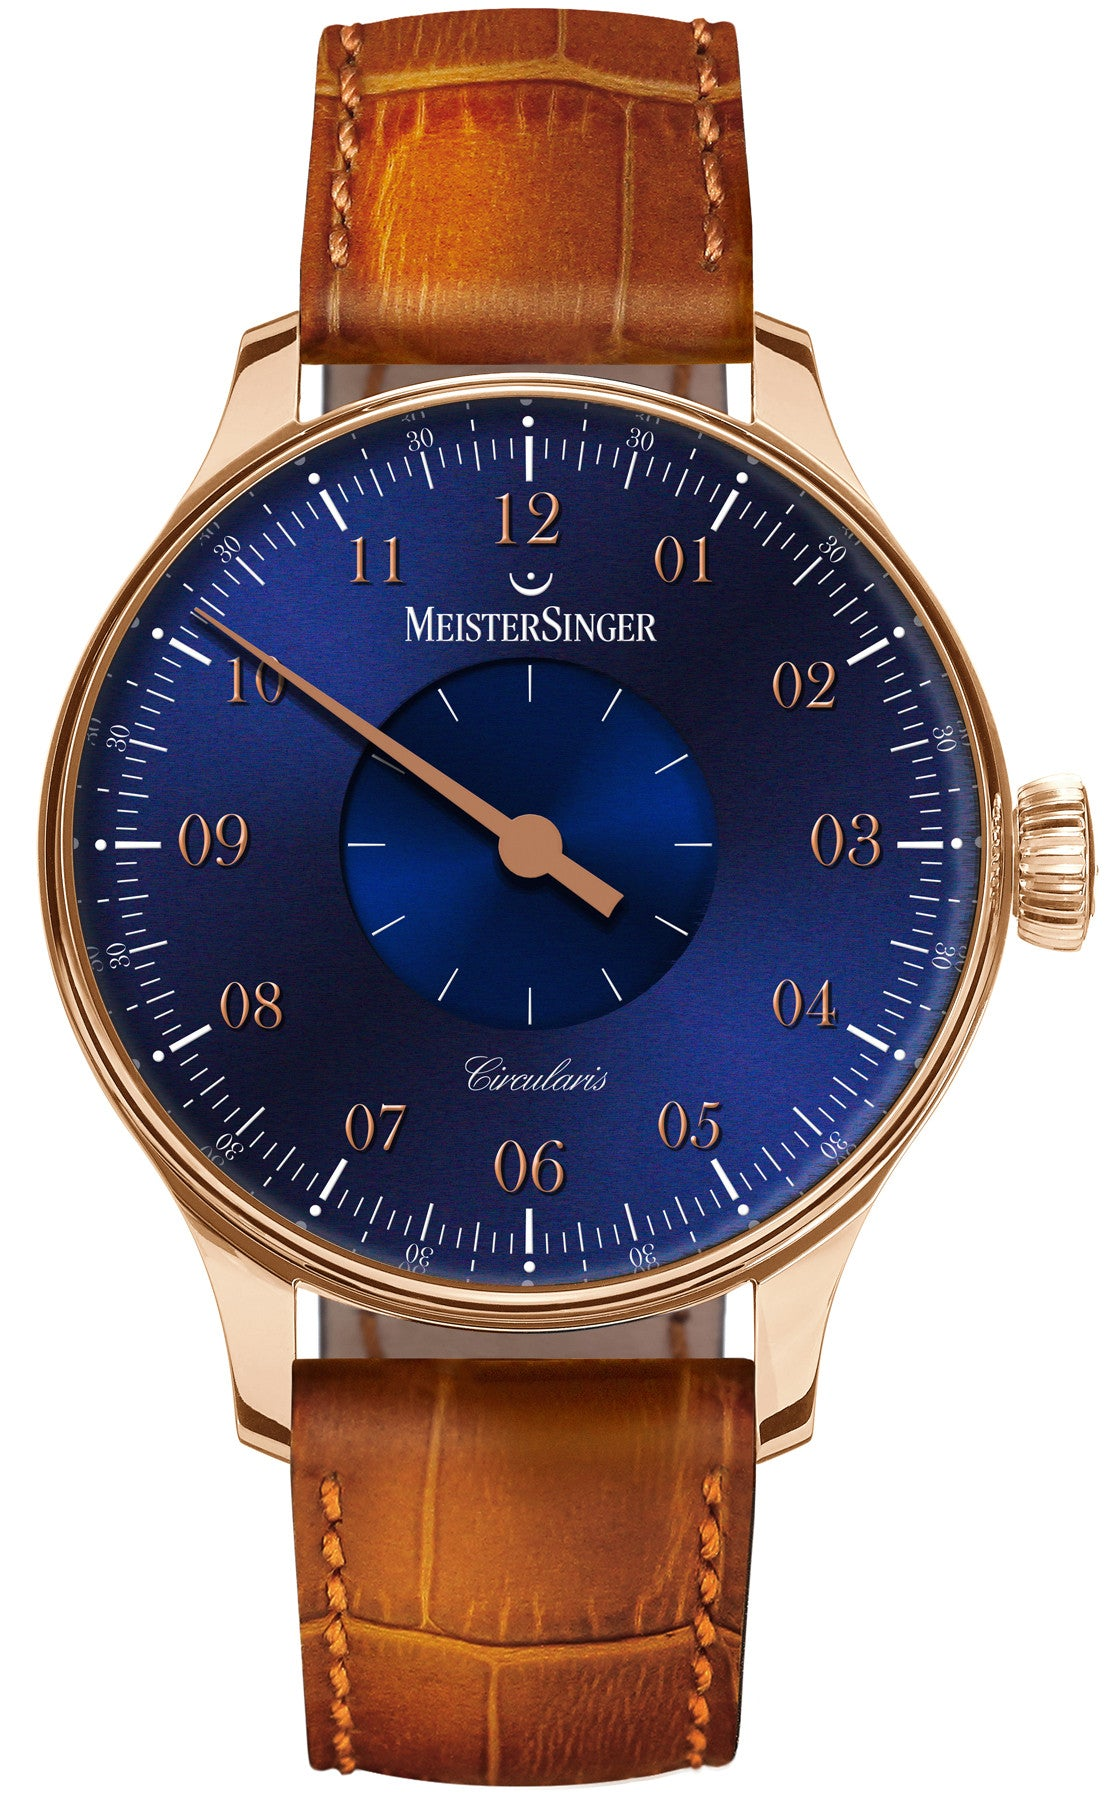 MeisterSinger Watch Circularis Gold Blue Limited Edition